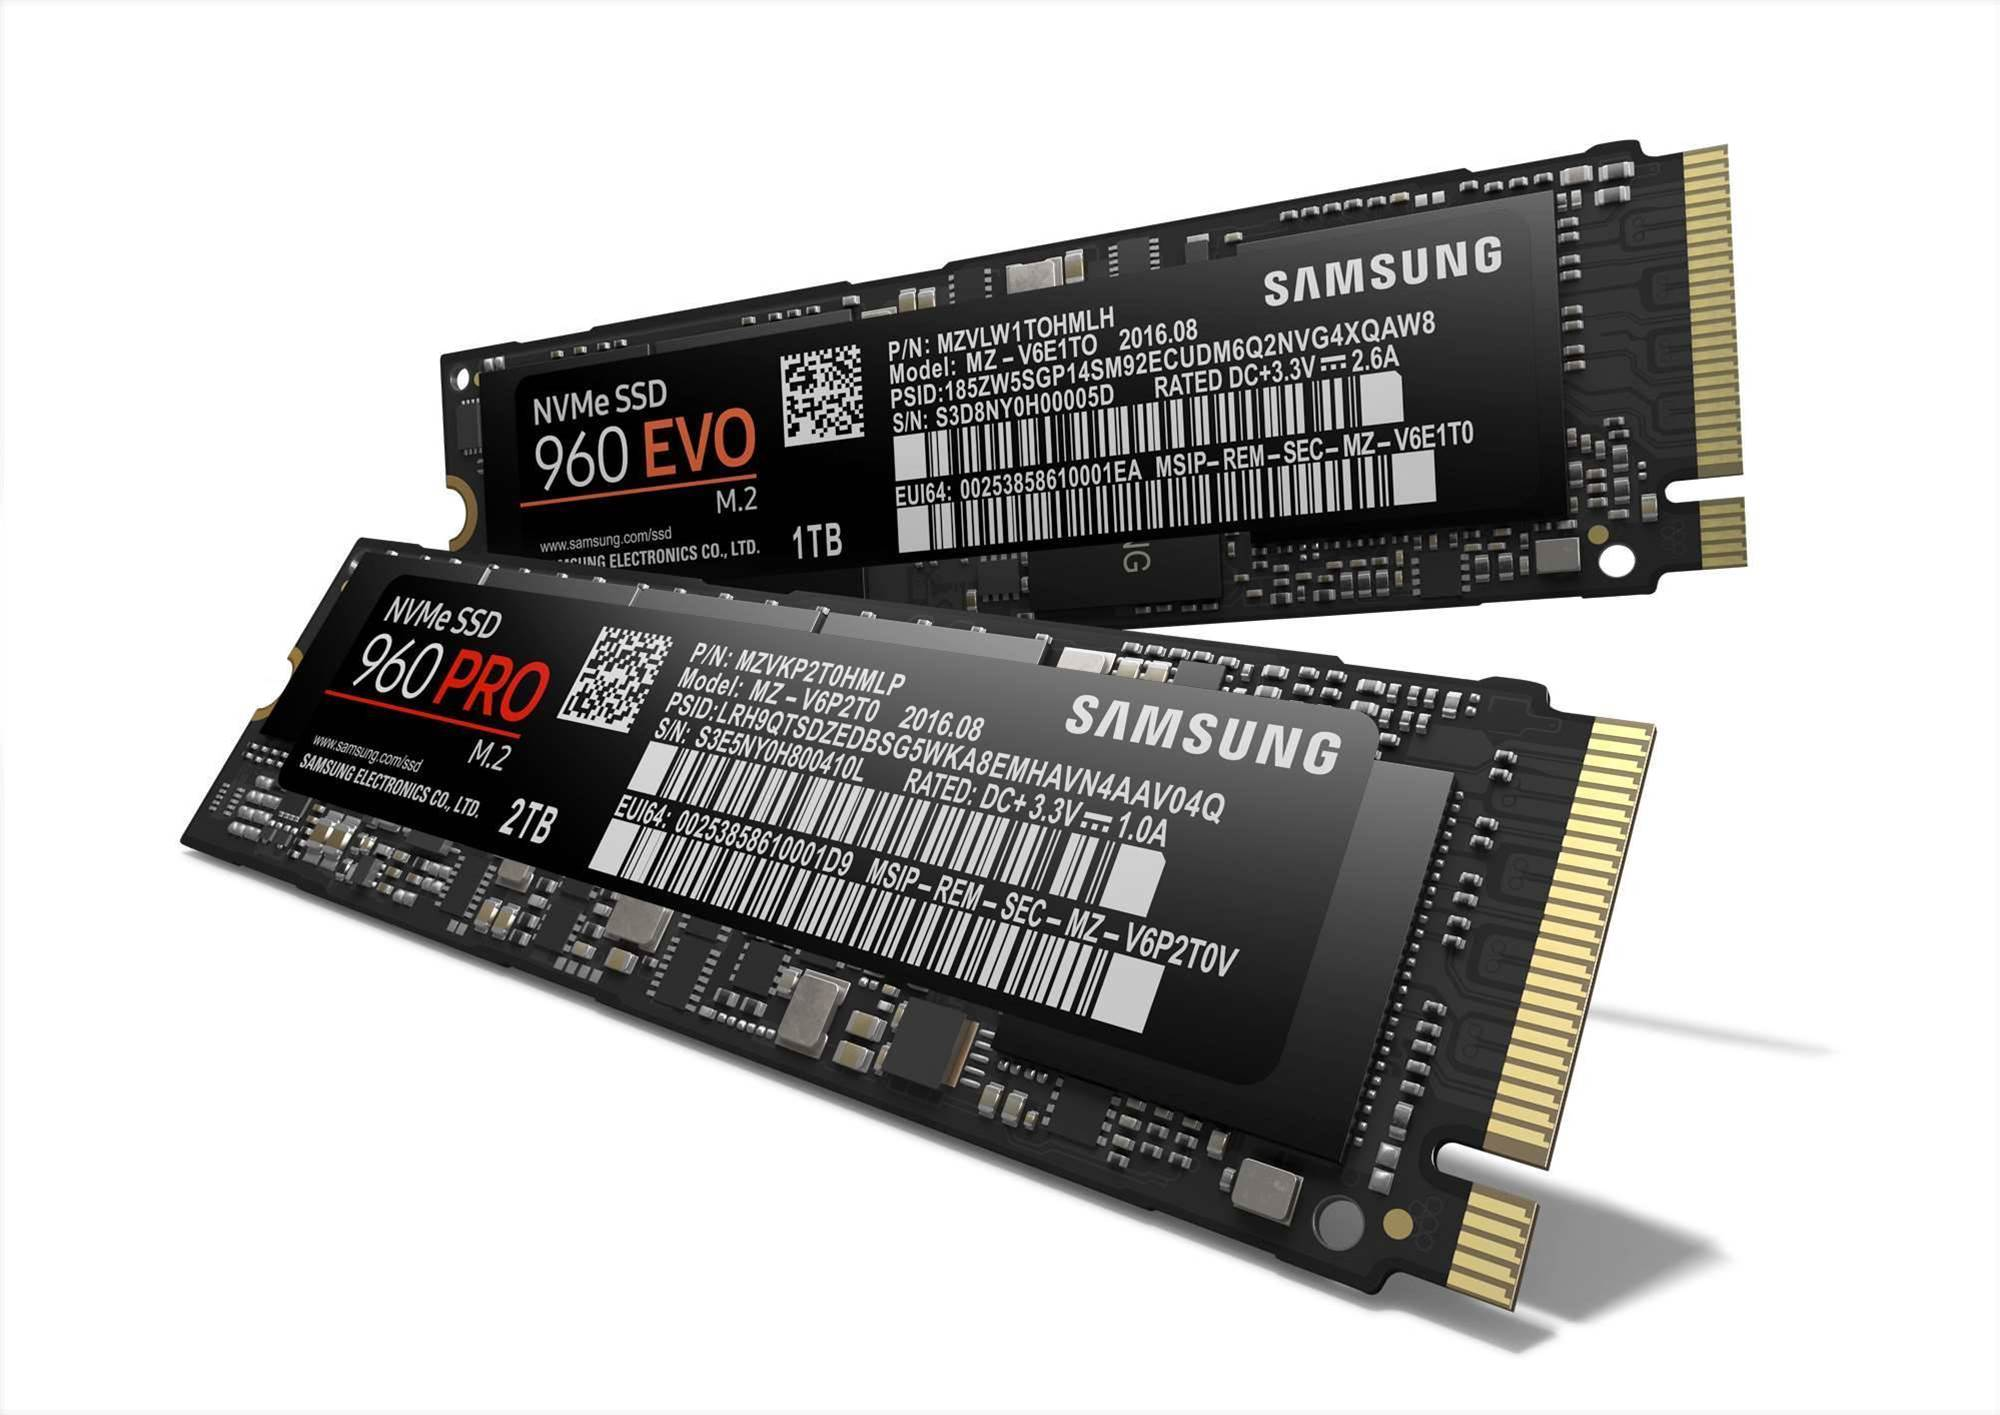 M.2 NVMe SSDs just got a nice speed boost